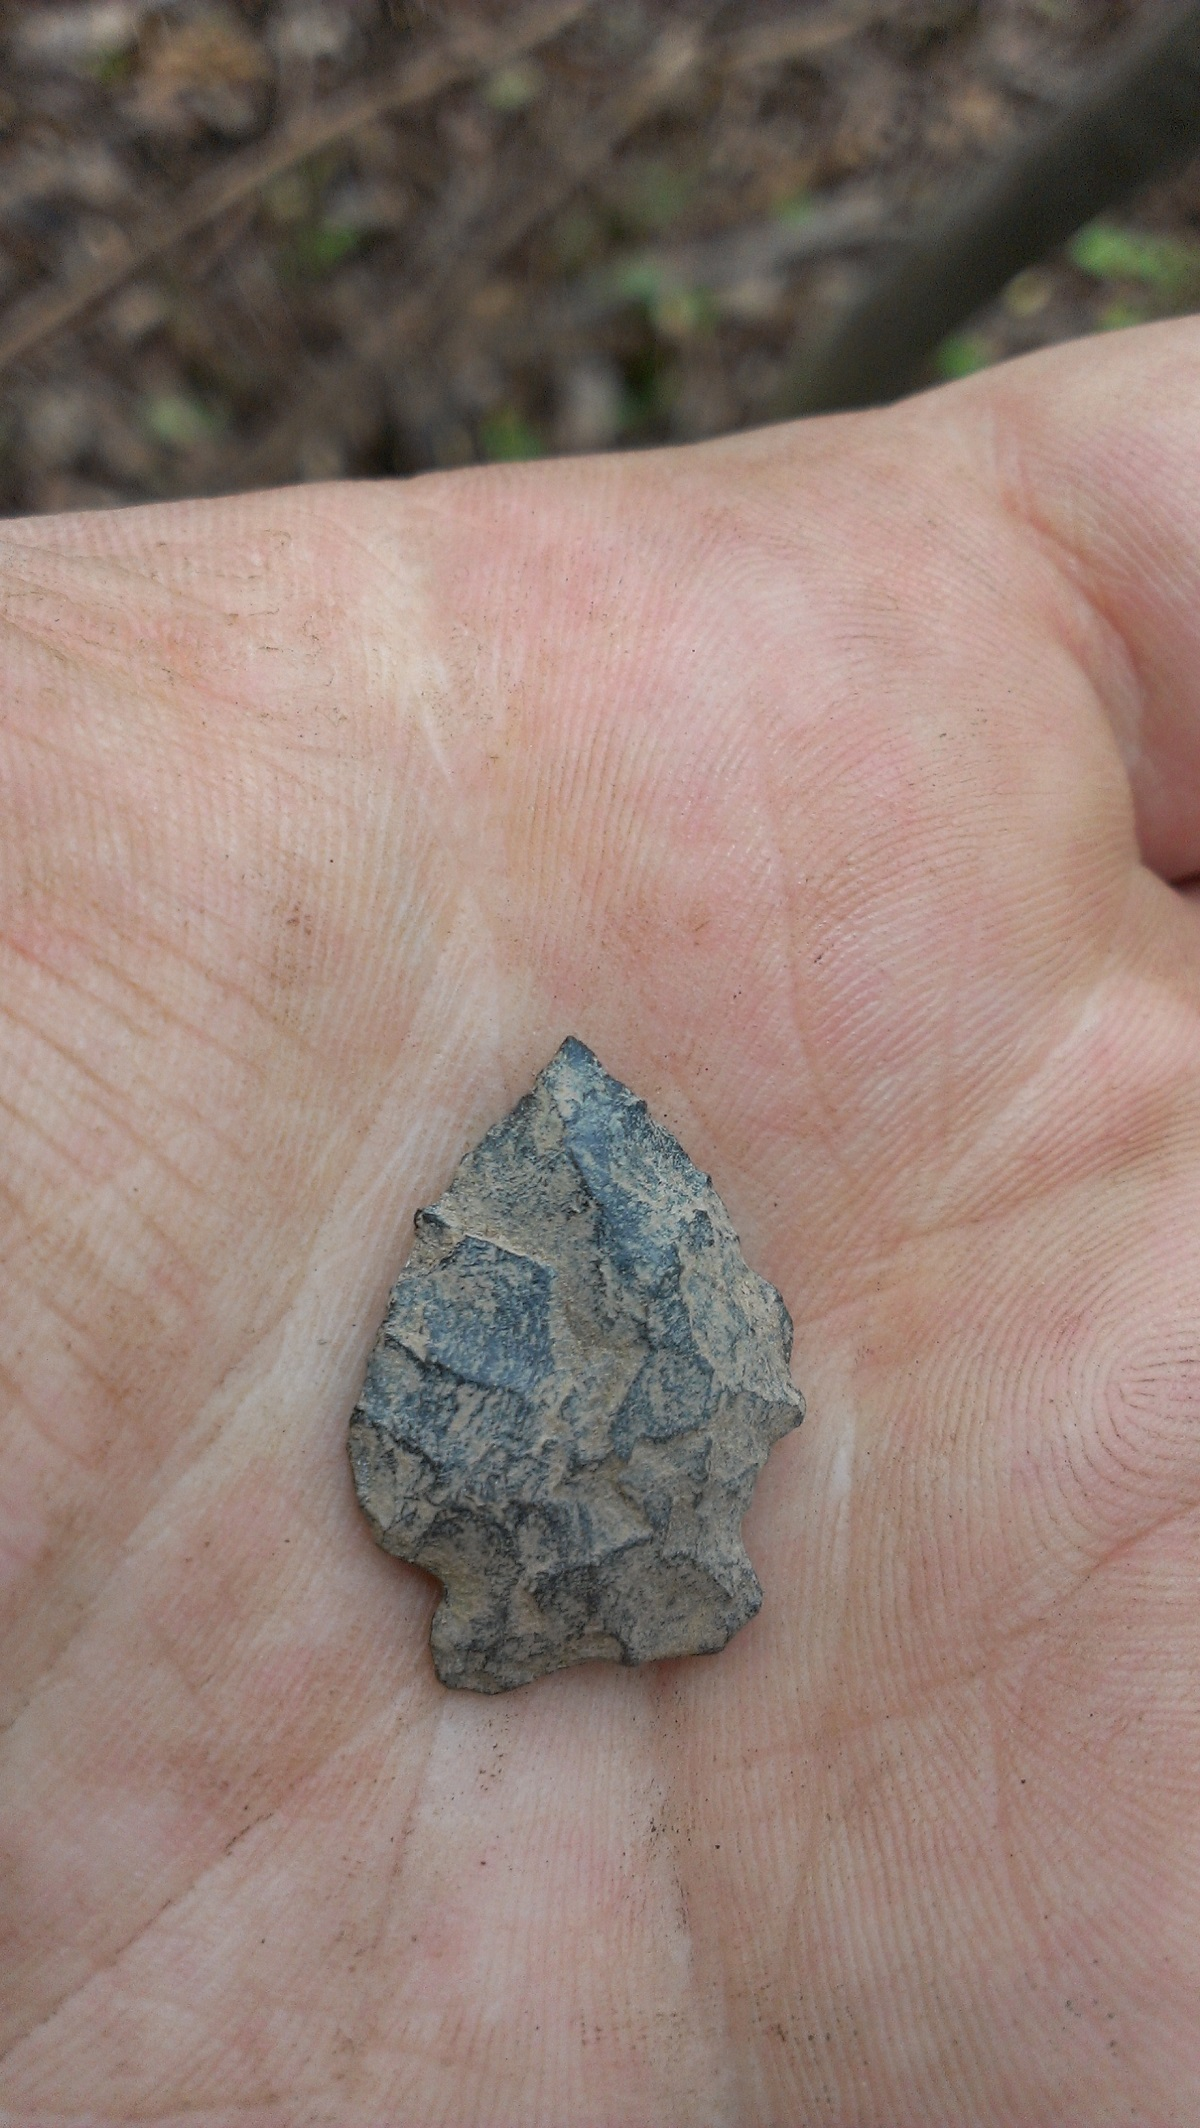 Late Precontact Arrowhead